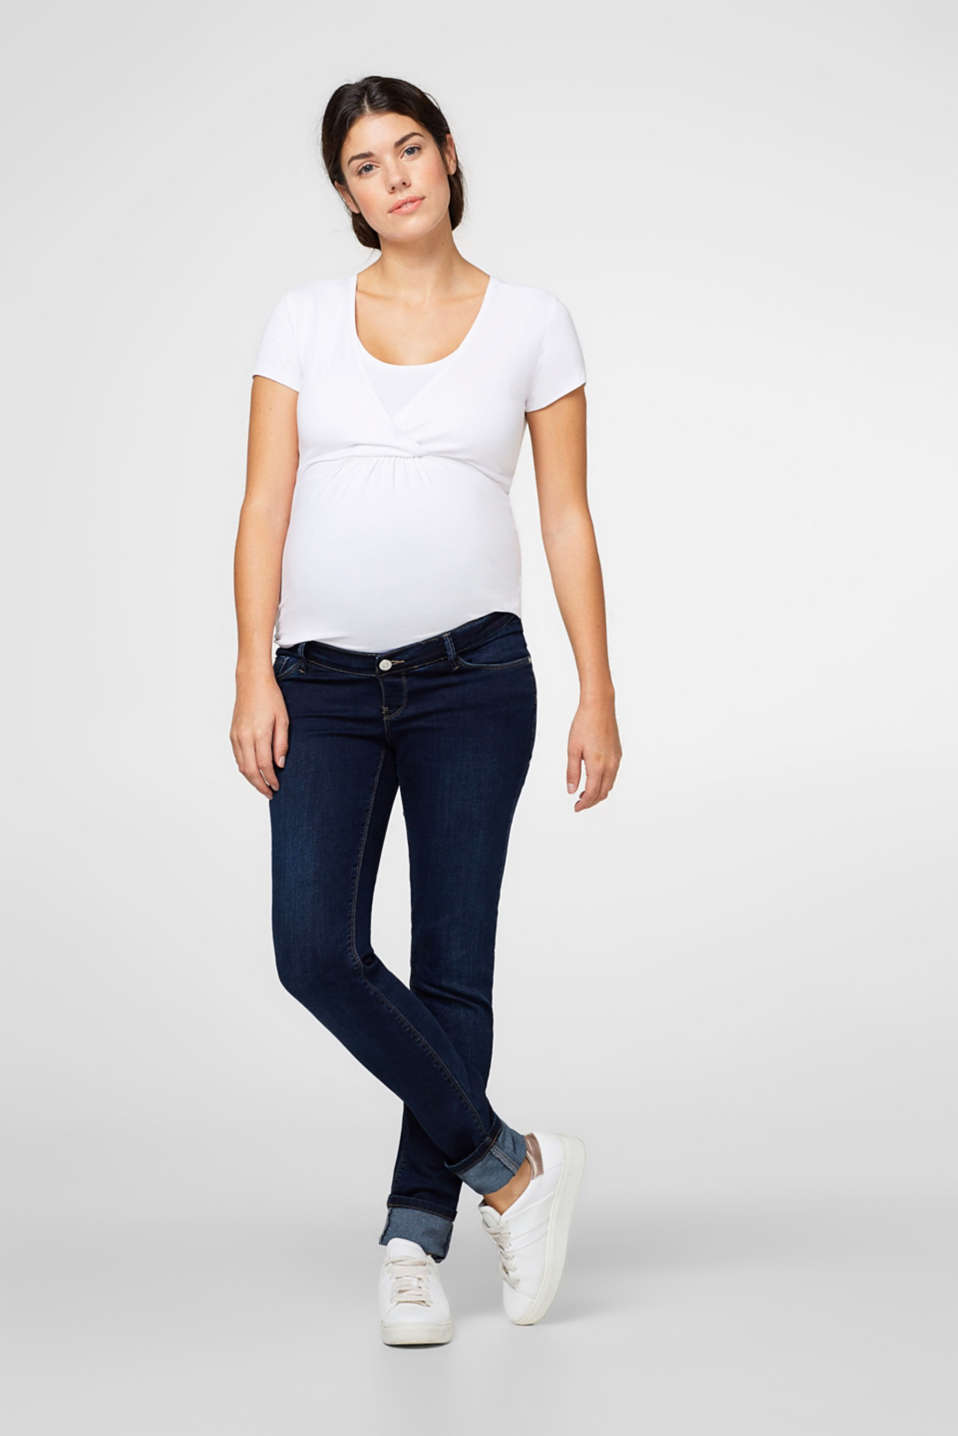 Esprit - Dark denim jeggings + above-bump waist